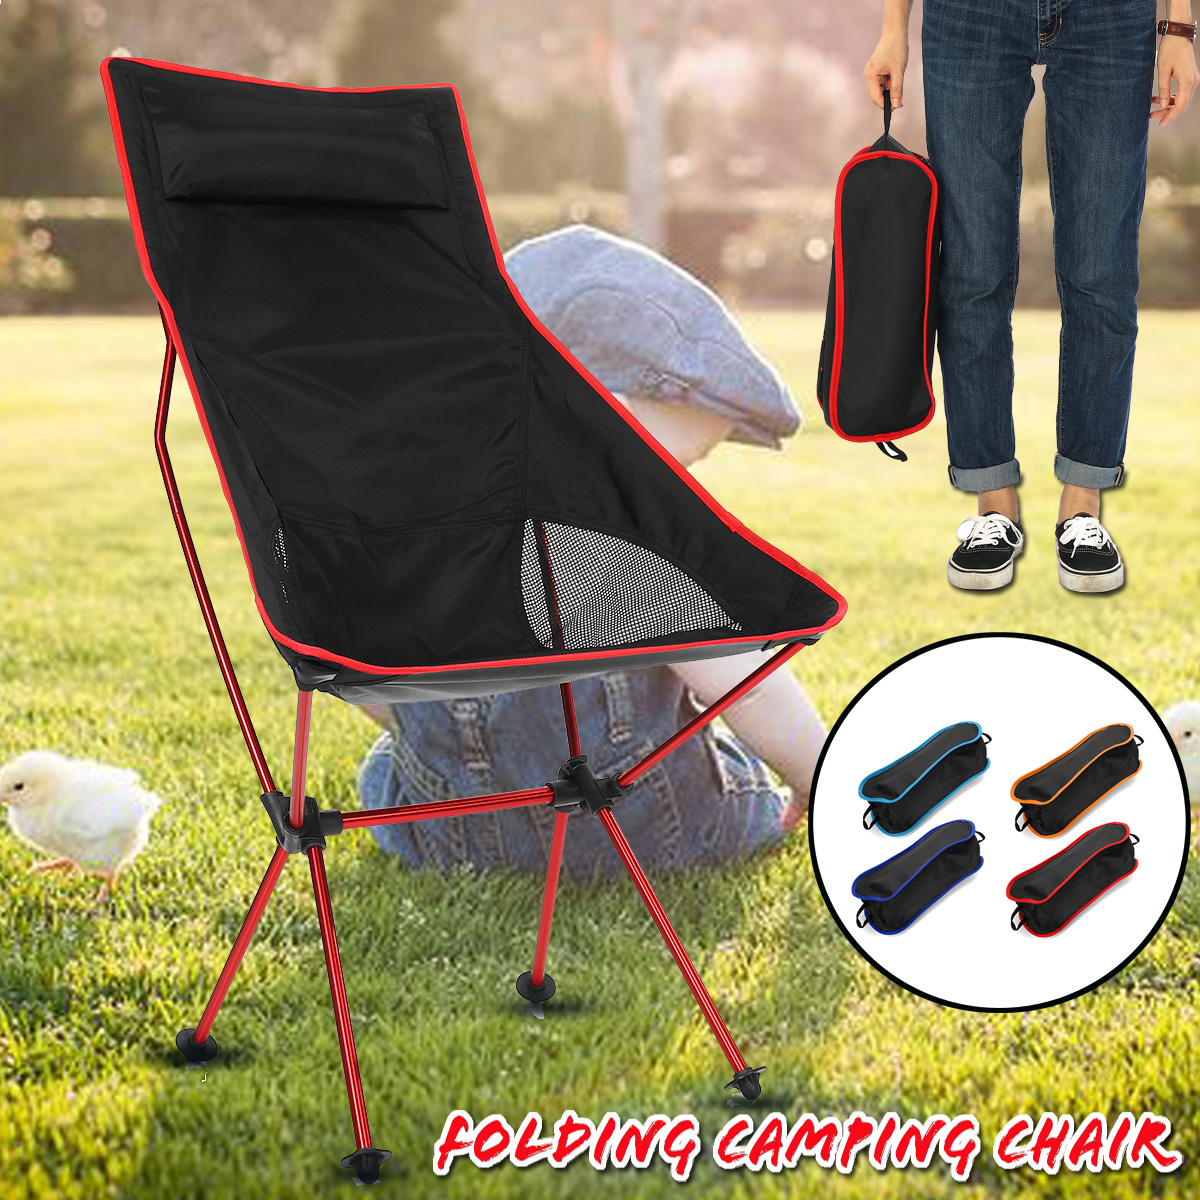 Surprising Lightweight Ultra Light Folding Camping Chair Portable Bralicious Painted Fabric Chair Ideas Braliciousco